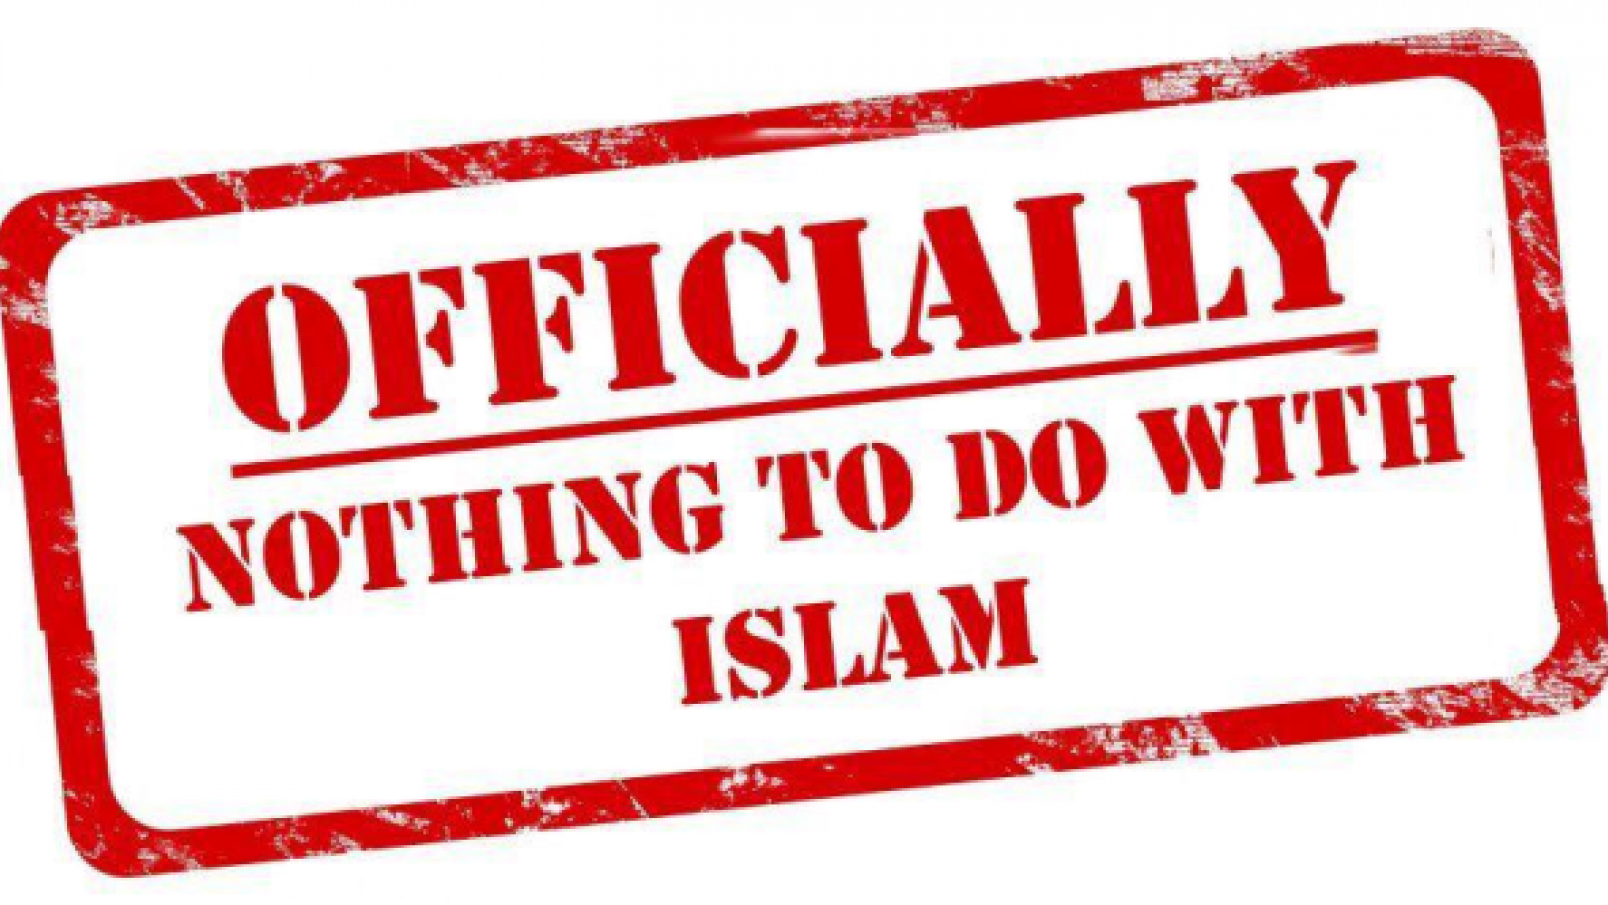 UNOFFICIALLY, EVERYONE KNOWS IT HAD EVERYTHING TO DO WITH ISLAM